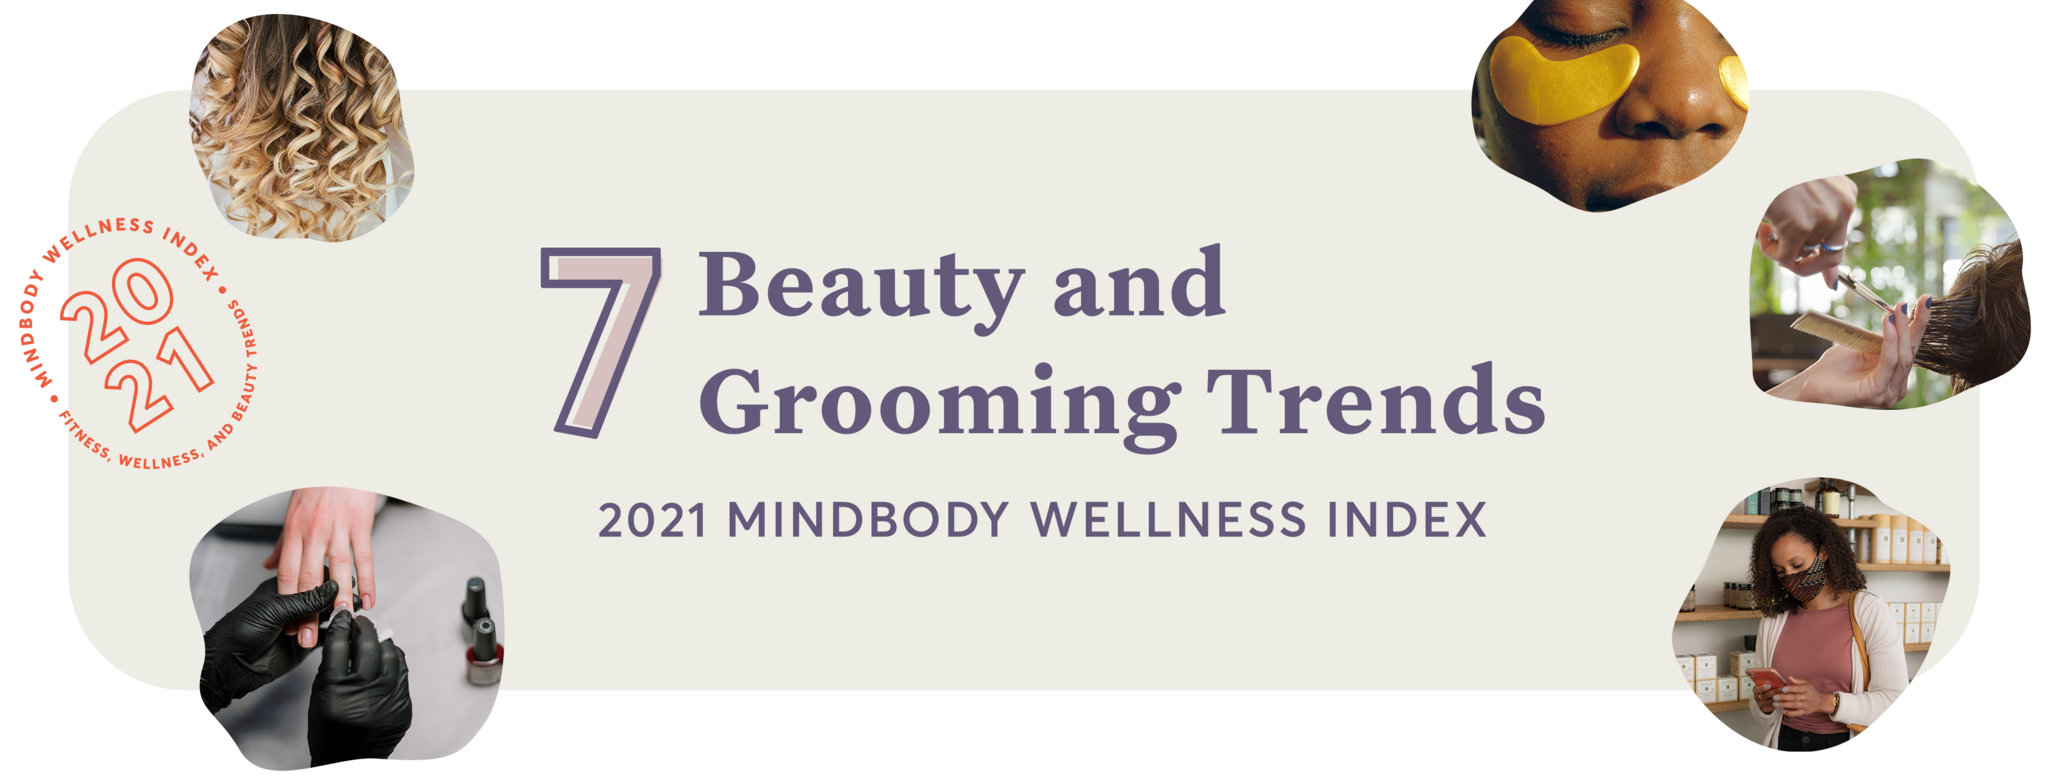 7 Beauty and Grooming Trends: 2021 Mindbody Wellness Index